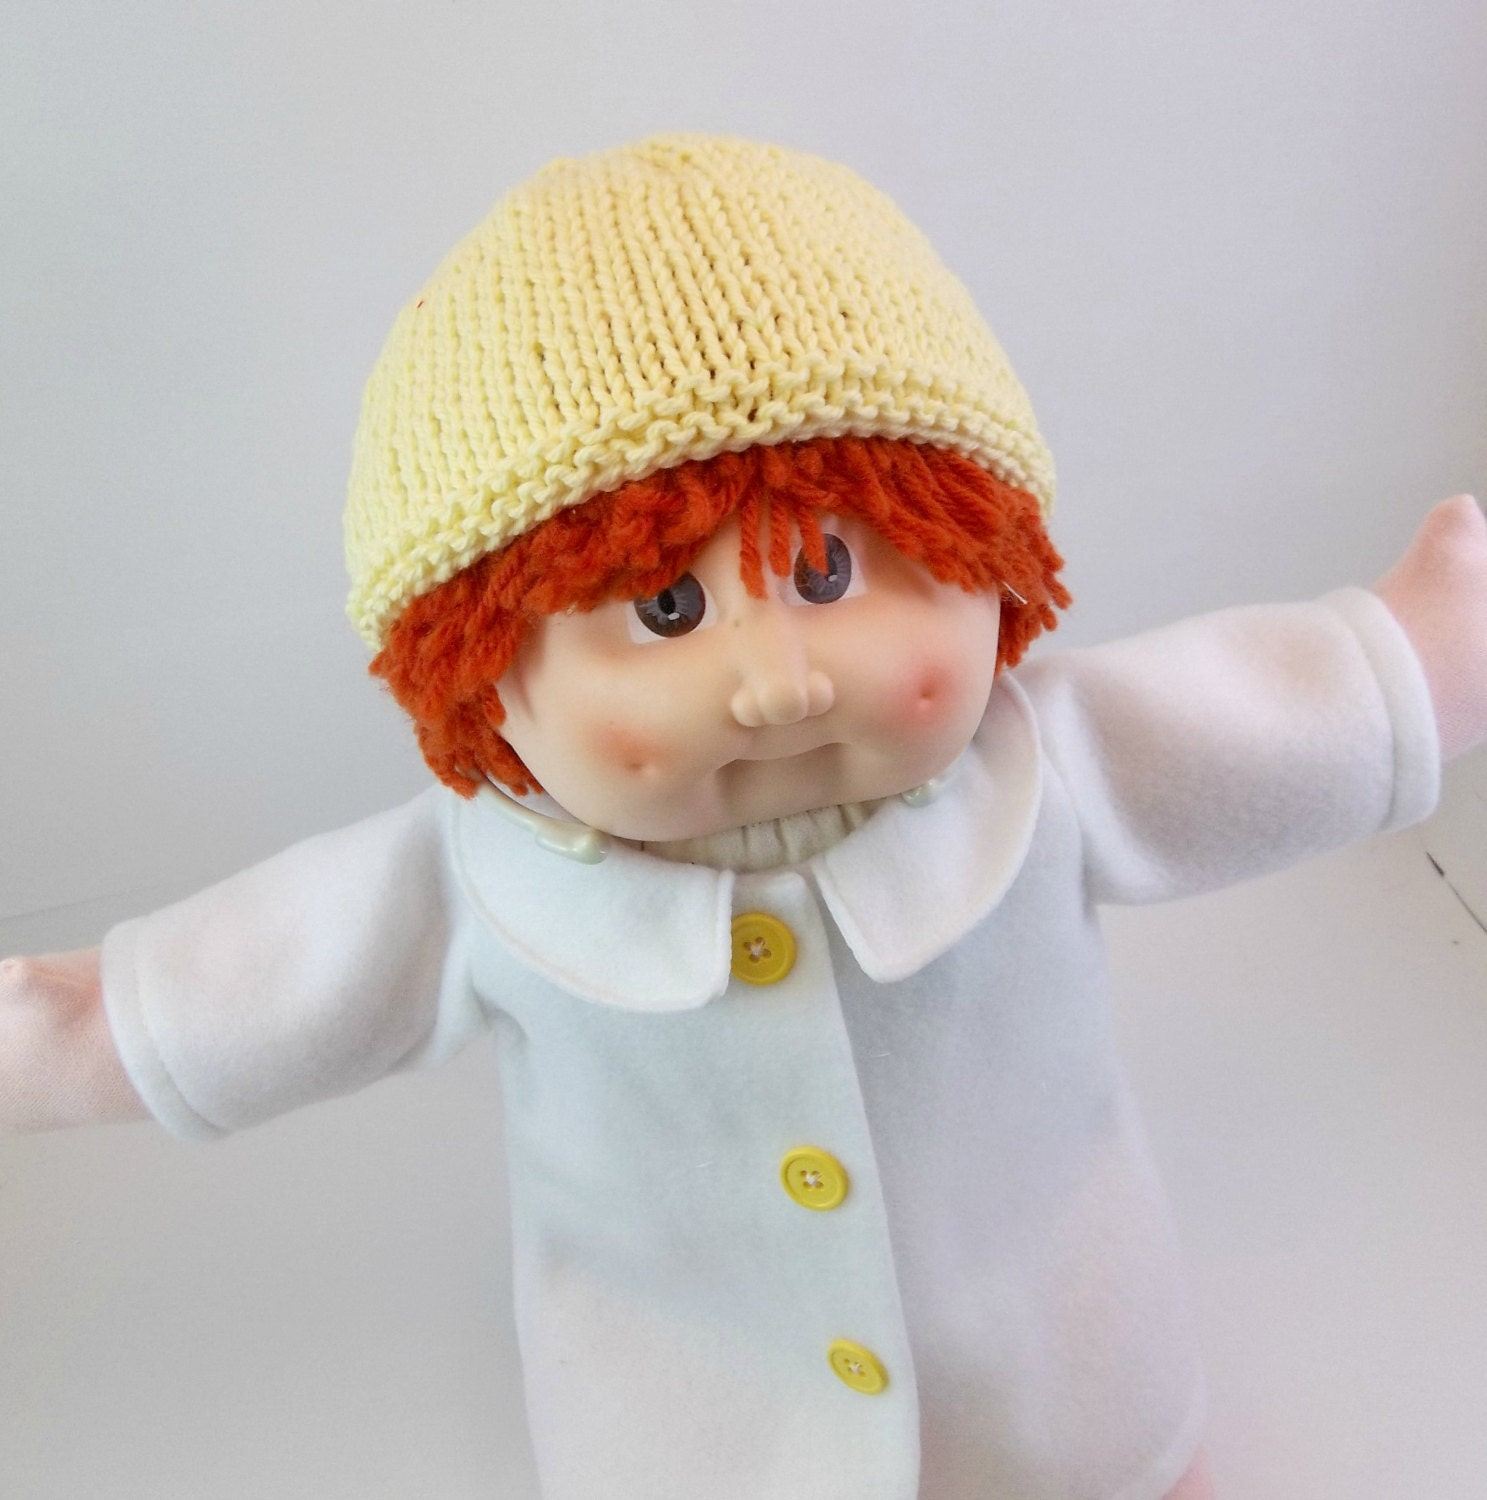 White Fleece Coat and Yellow Knit Hat for Cabbage Patch